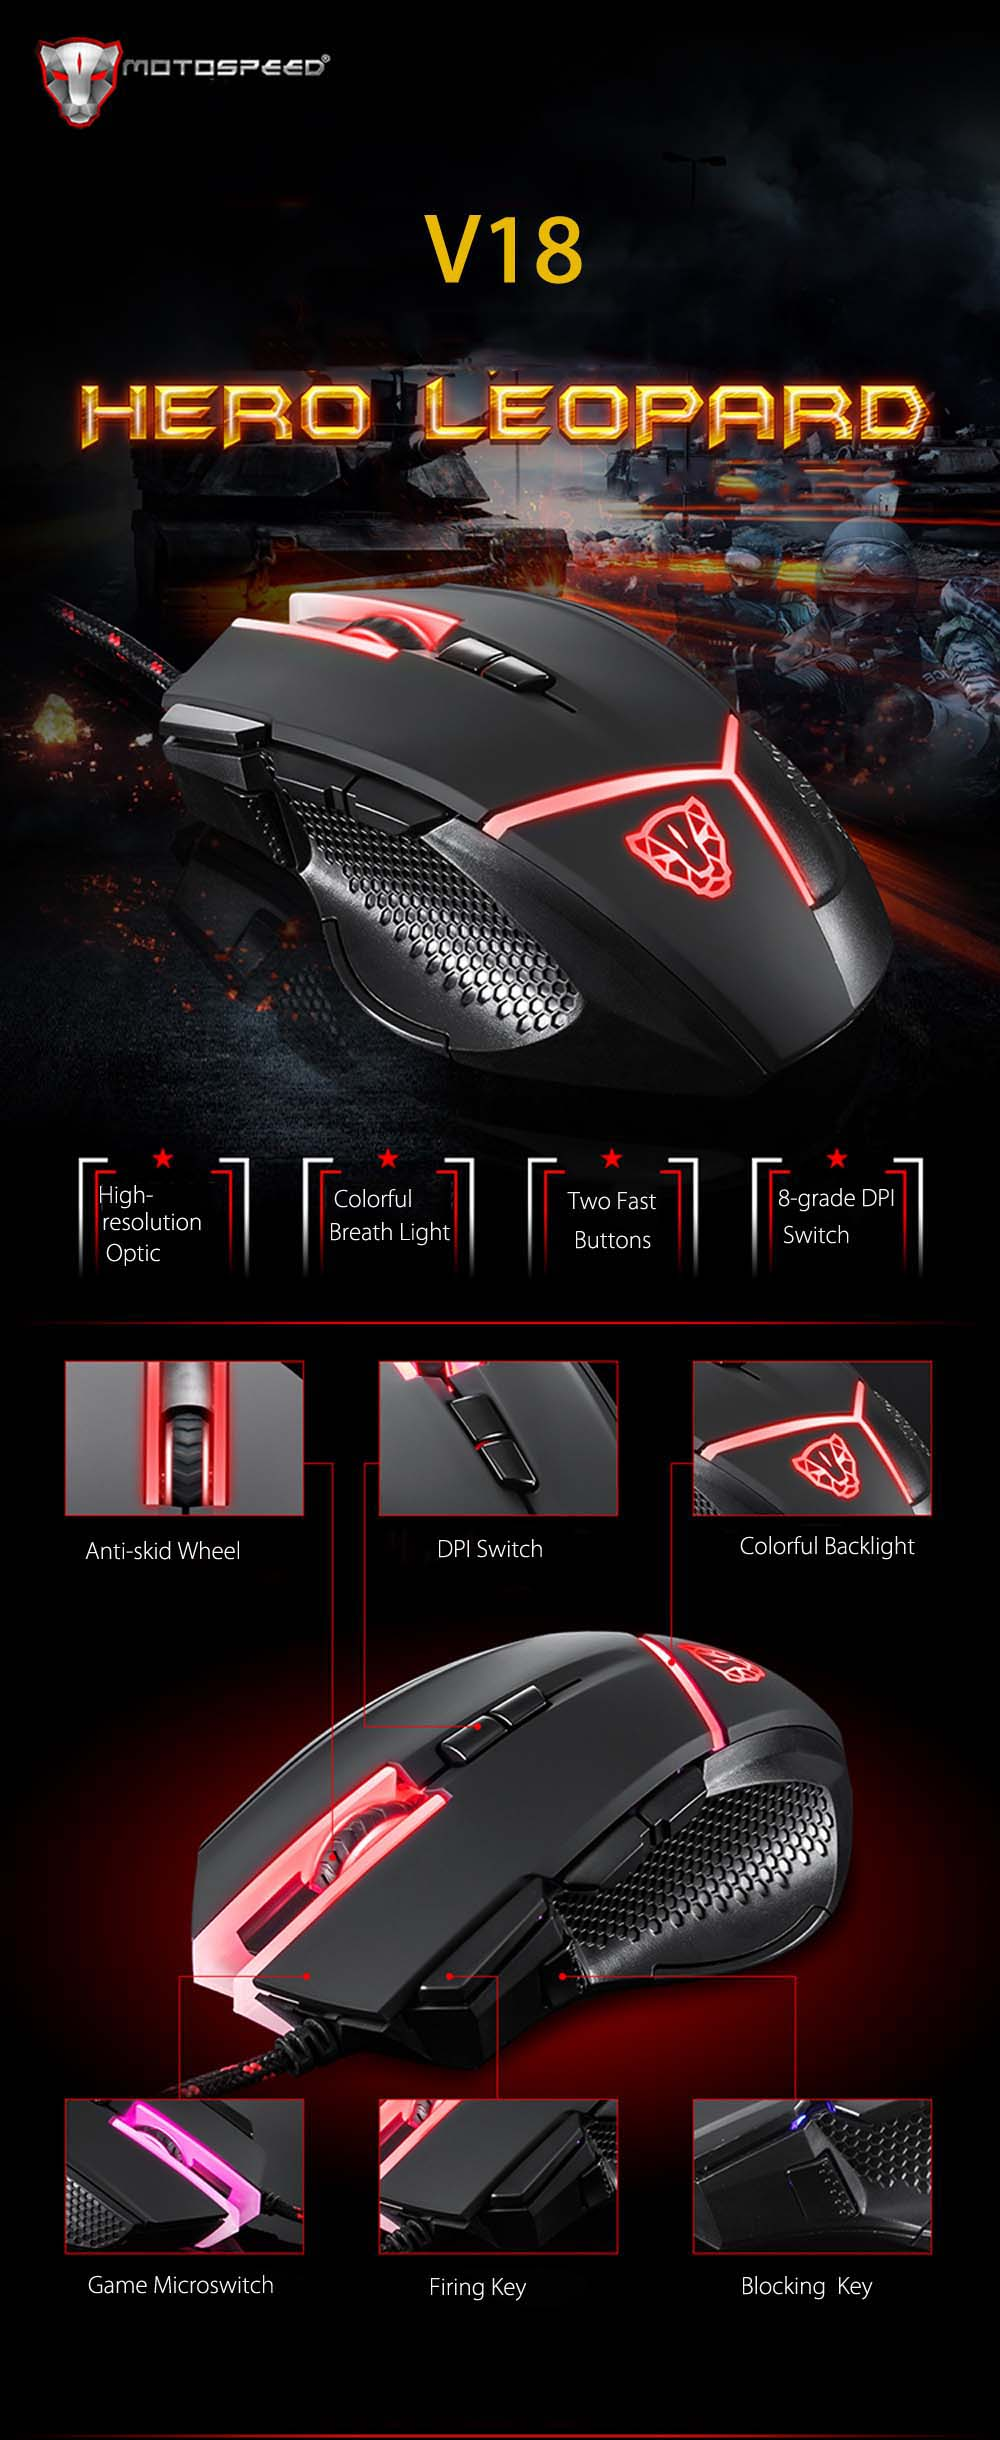 Motospeed V18 Gaming Mouse Wired